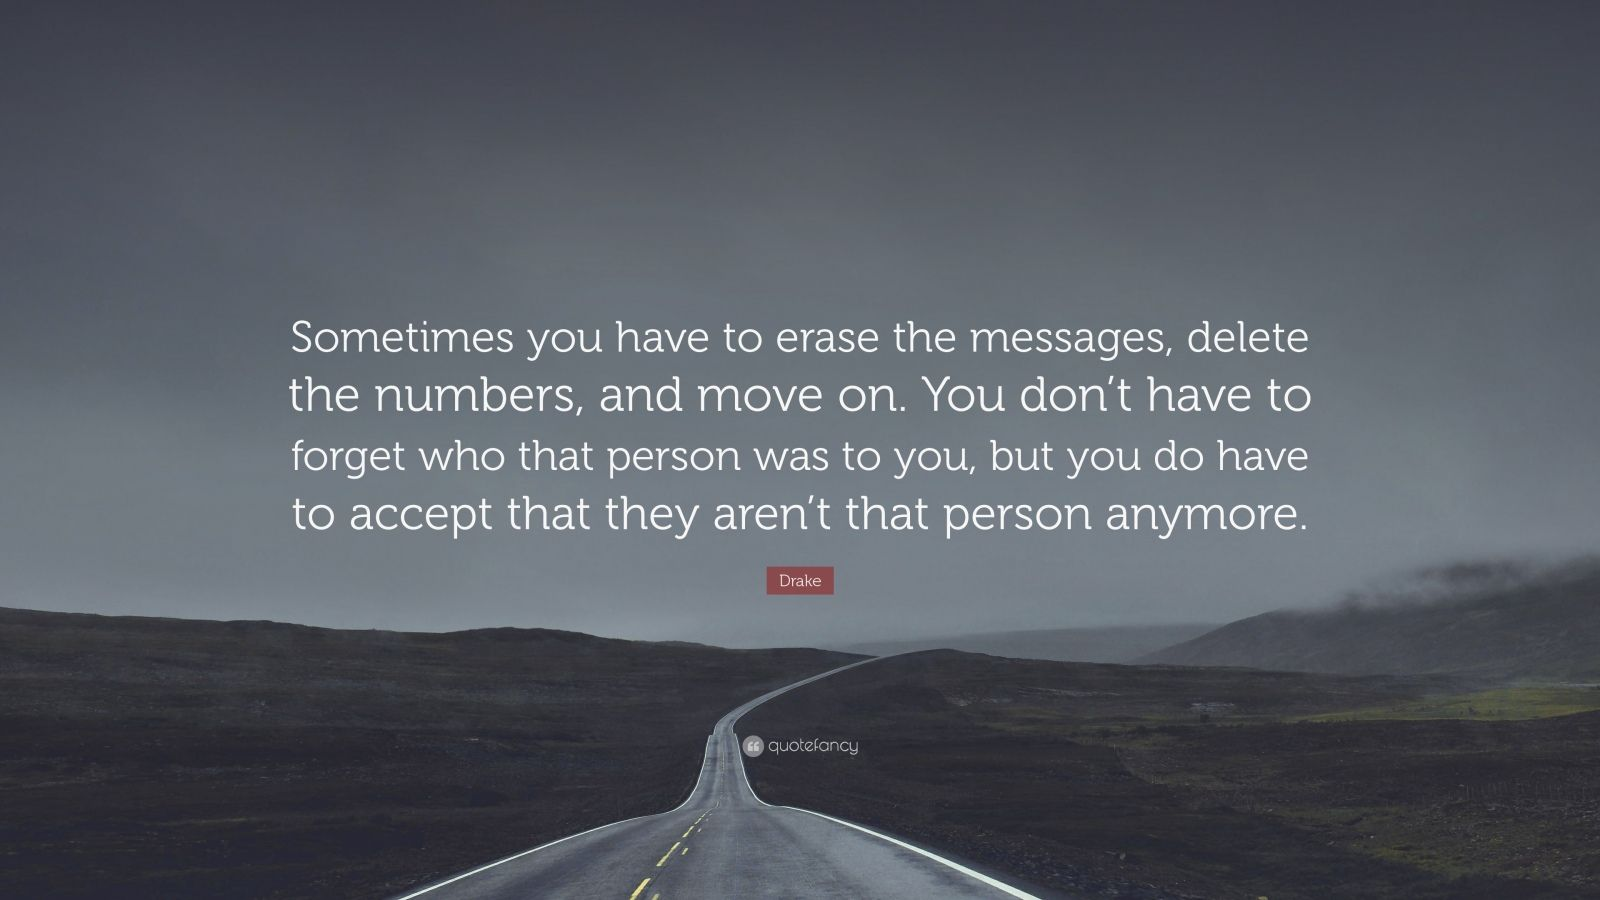 """Breakup Quotes: """"Sometimes you have to erase the messages, delete the numbers, and move on. You don't have to forget who that person was to you, but you do have to accept that they aren't that person anymore."""" — Drake"""